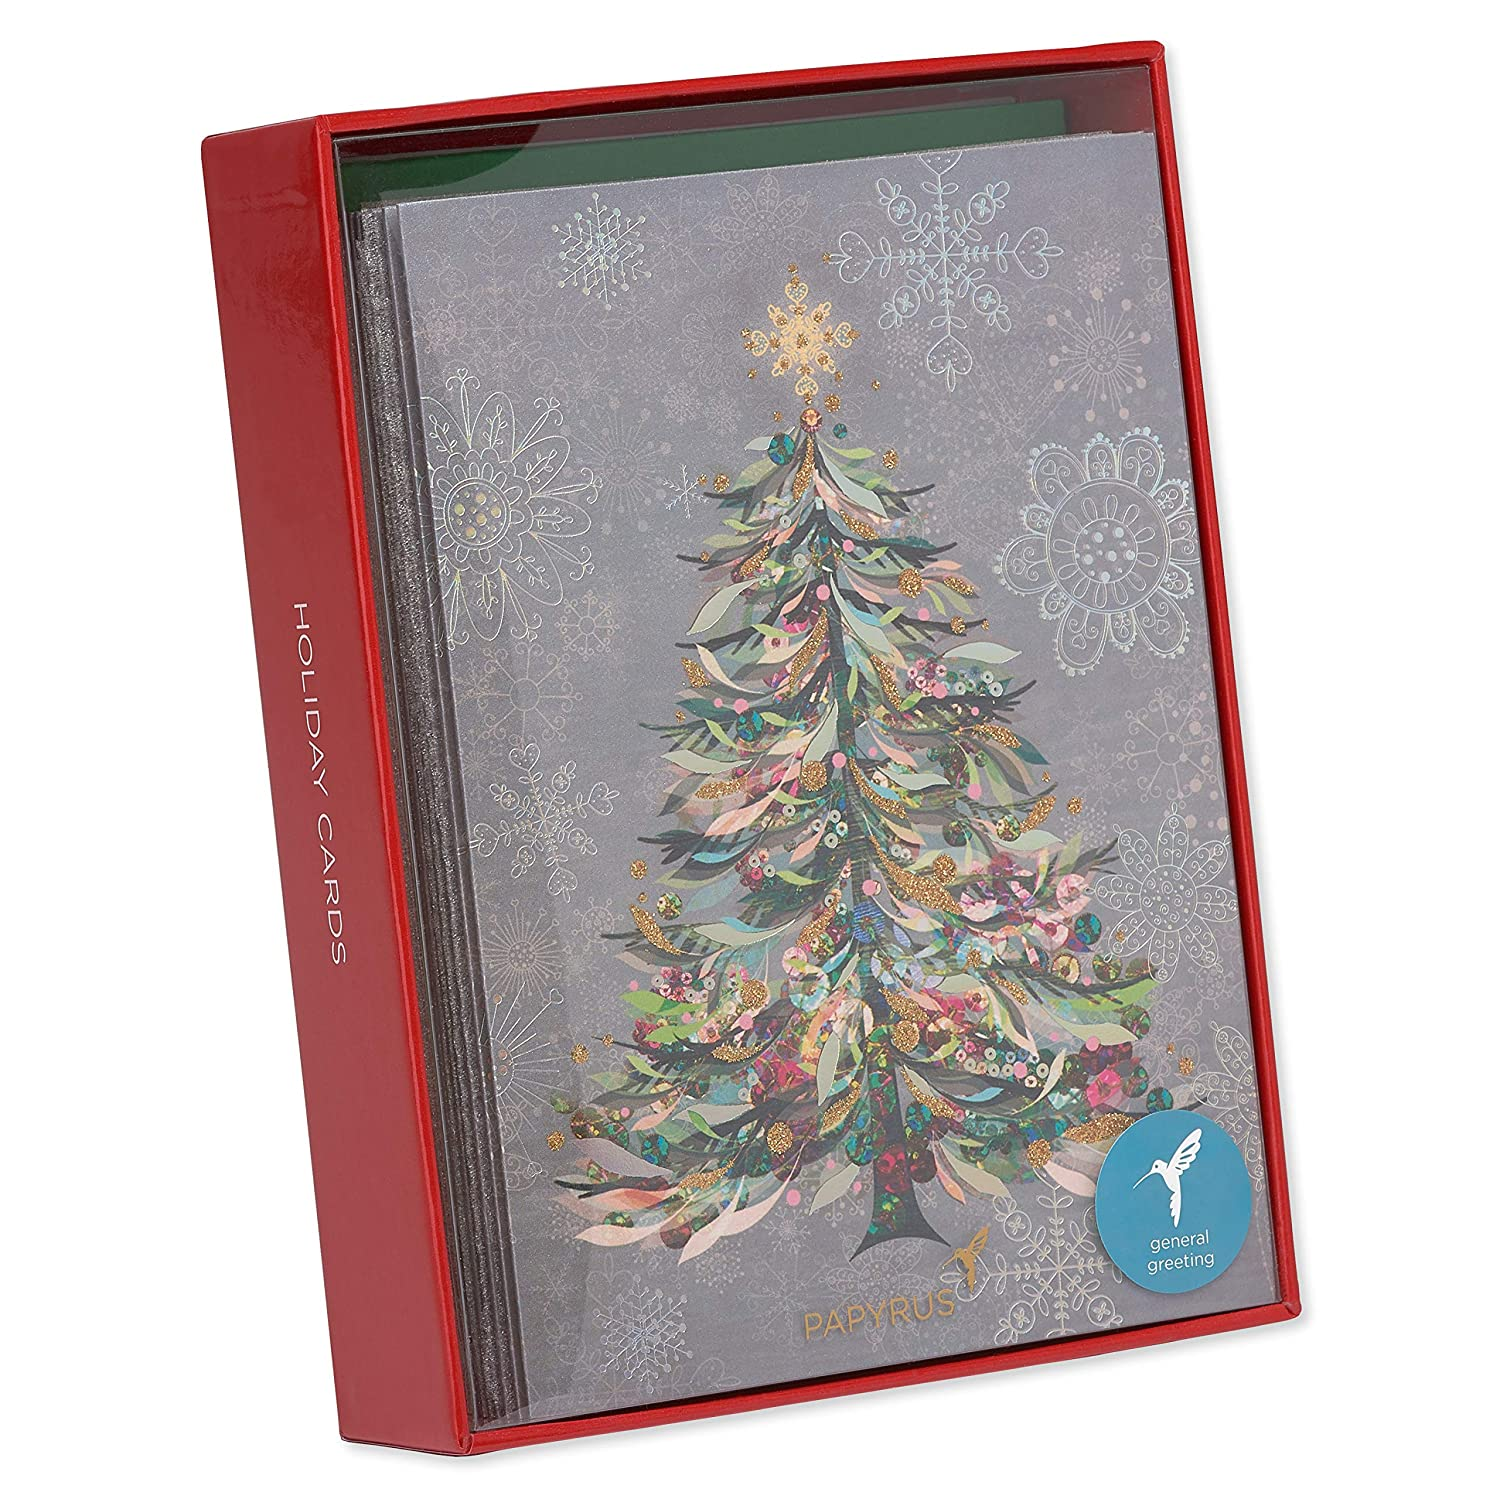 Papyrus Festive Christmas Tree Christmas Cards Boxed Gold Foil Lined ...